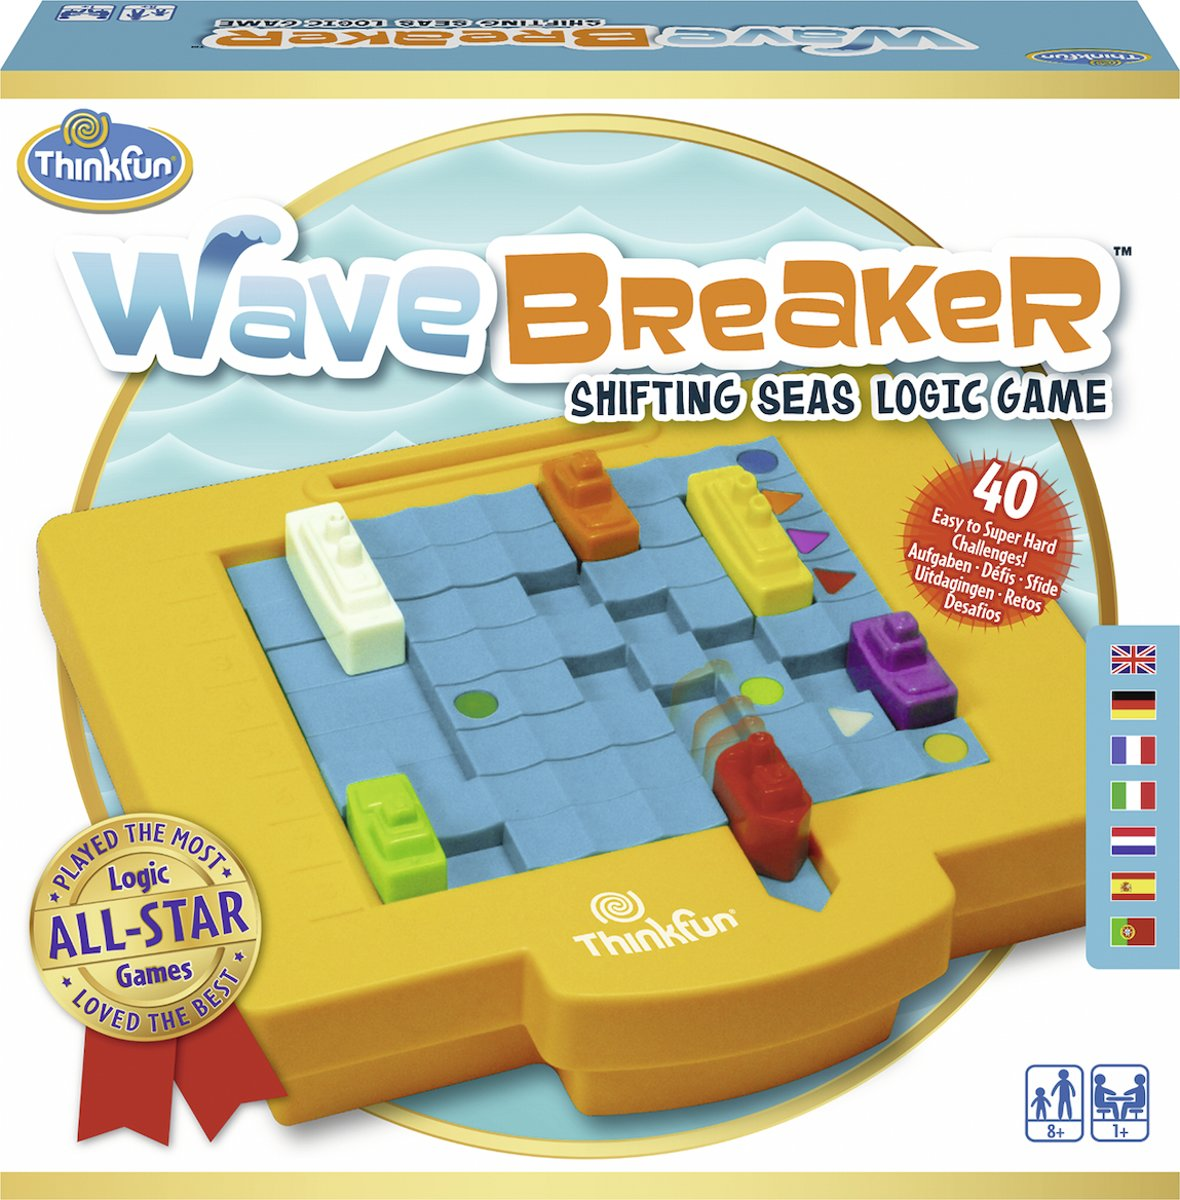 Thinkfun Wave Breaker kopen